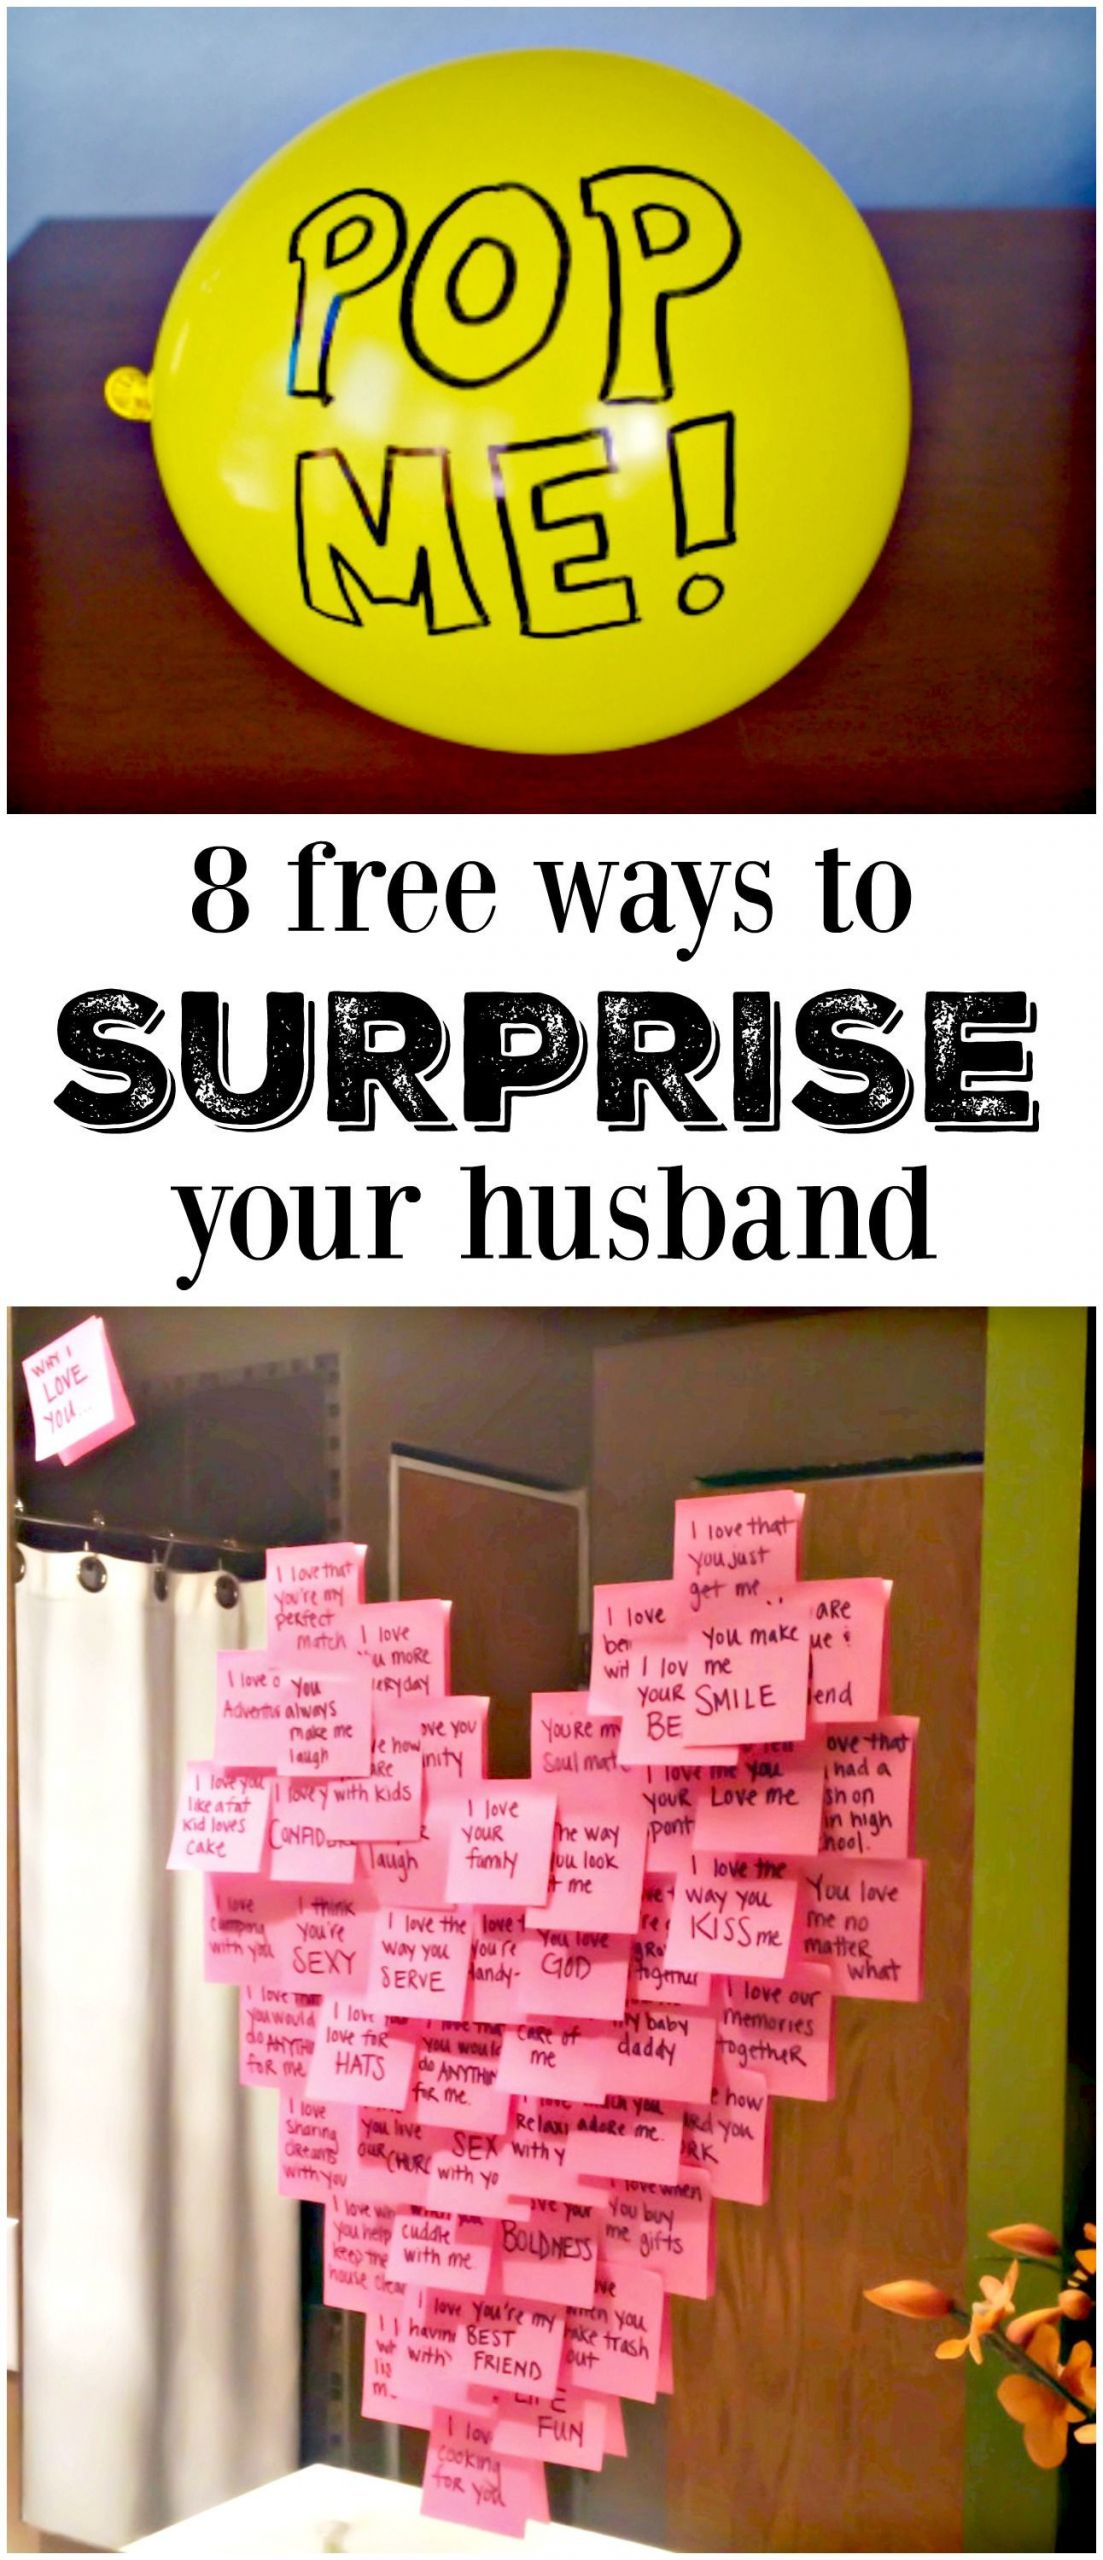 New Relationship Birthday Gift Ideas For Him  8 Meaningful Ways to Make His Day